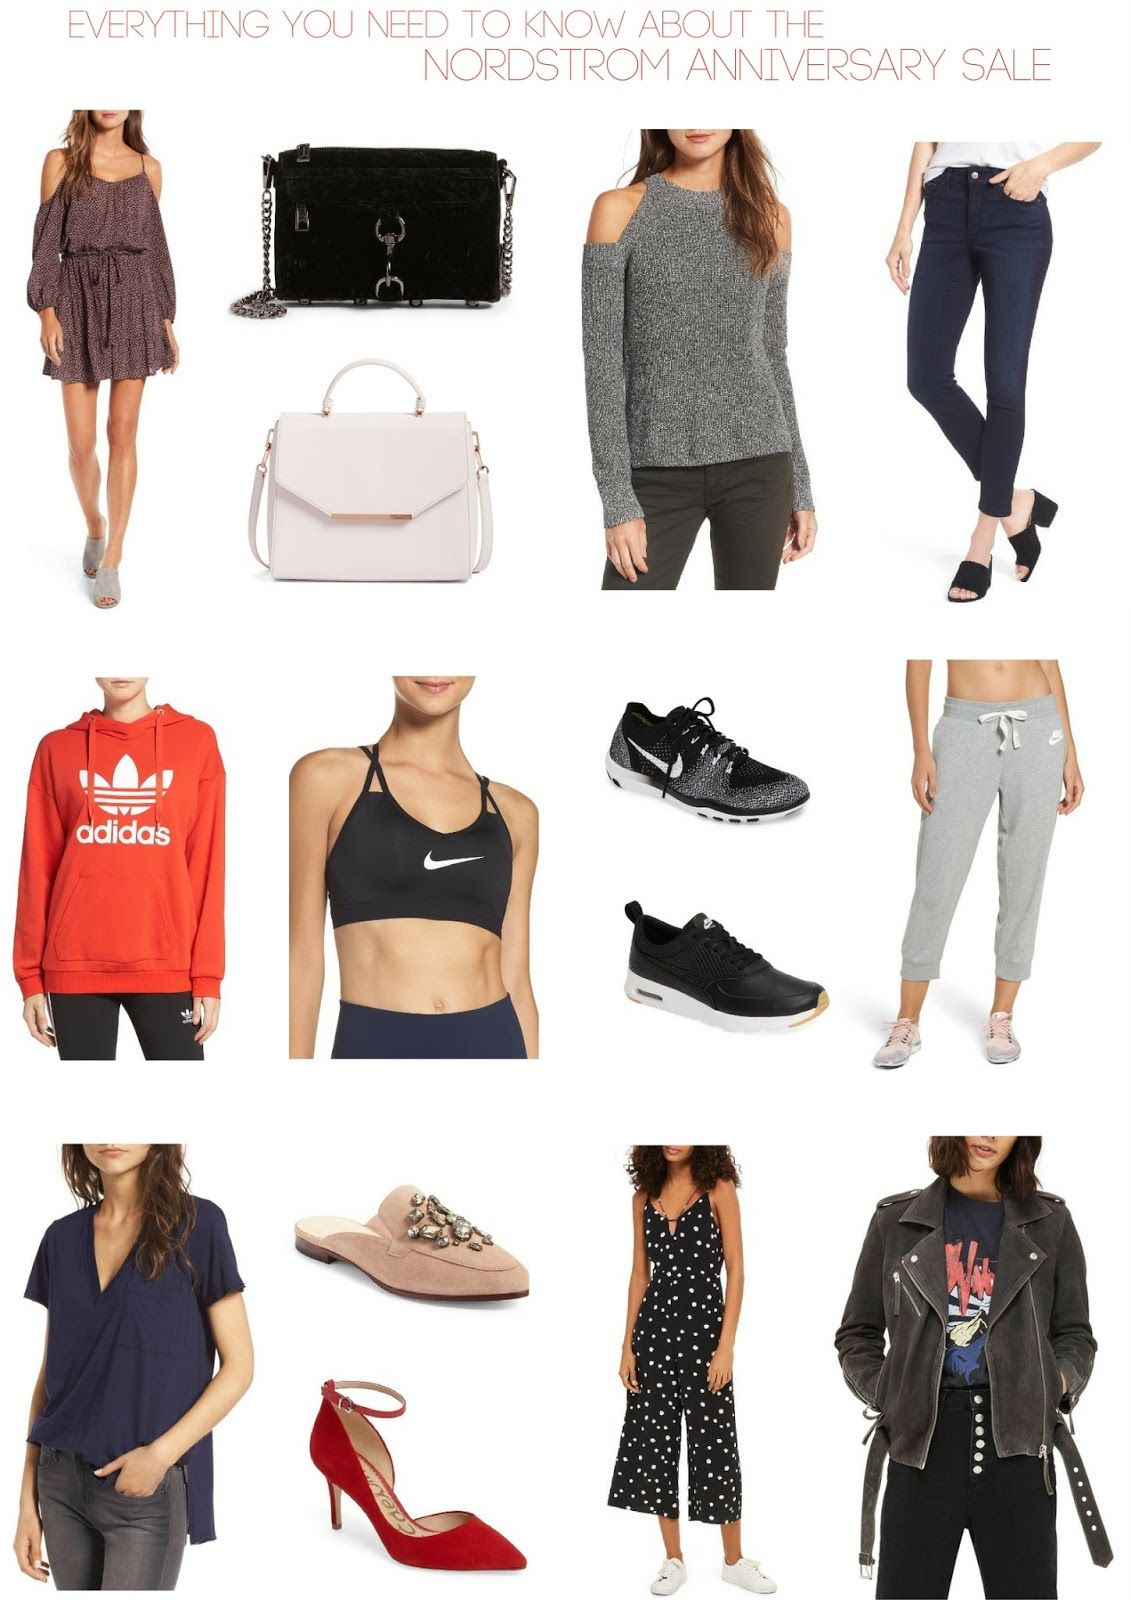 295edb0988551b Everything you need to know about the Nordstrom Anniversary sale. Shop  Nordstrom